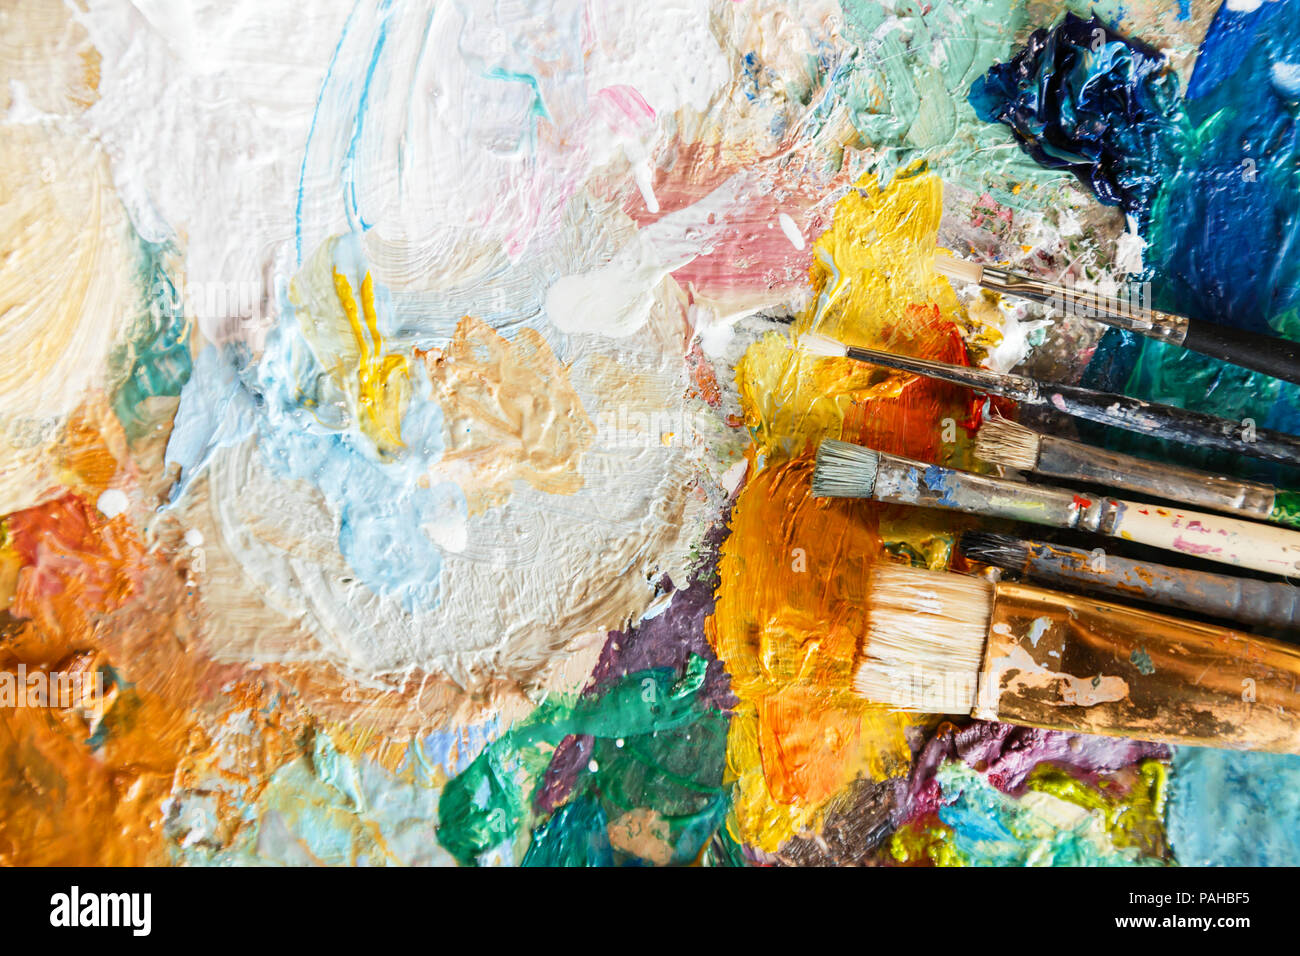 Oil paint and paint brush on a palette, abstract art texture, colorful, modern artwork strokes of paint, brushstrokes, modern art, contemporary, artistic - Stock Image